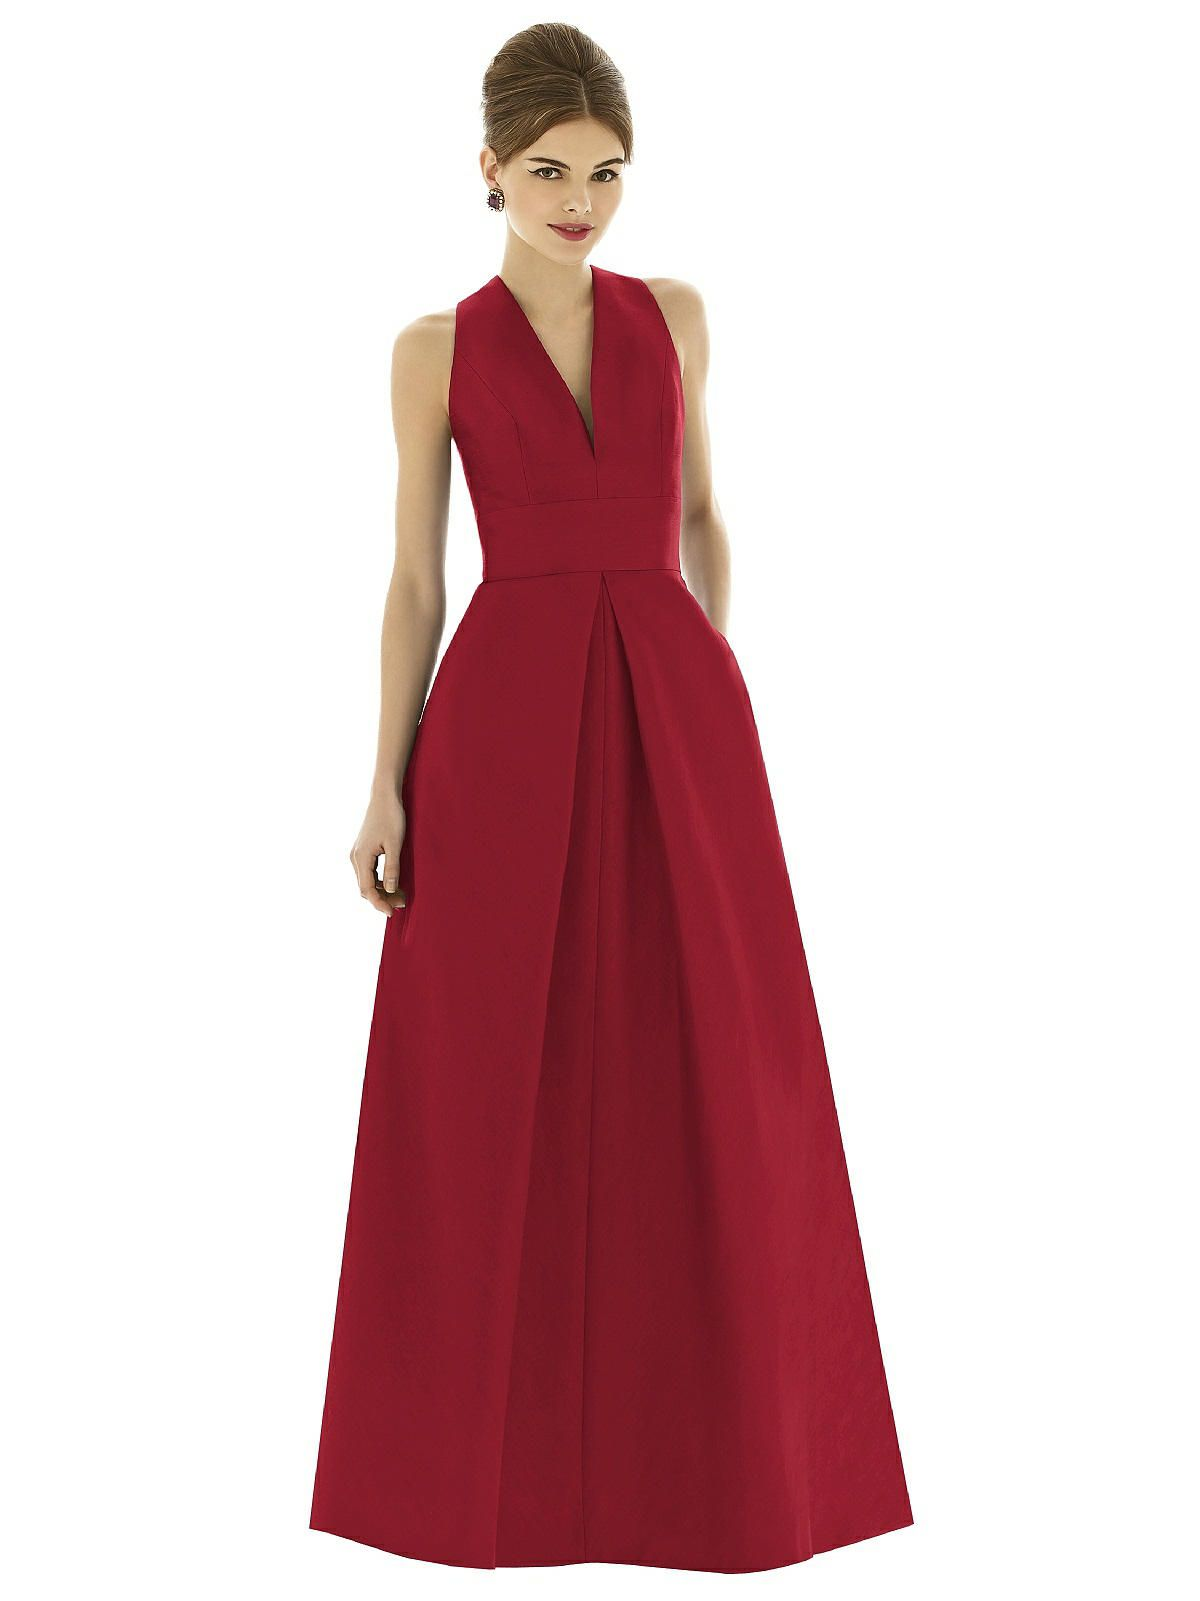 Alfred sung style d611 httpdessydressesbridesmaid the alfred sung bridesmaid collection offers fresh contemporary bridesmaid dresses while keeping your budget in mind ombrellifo Images